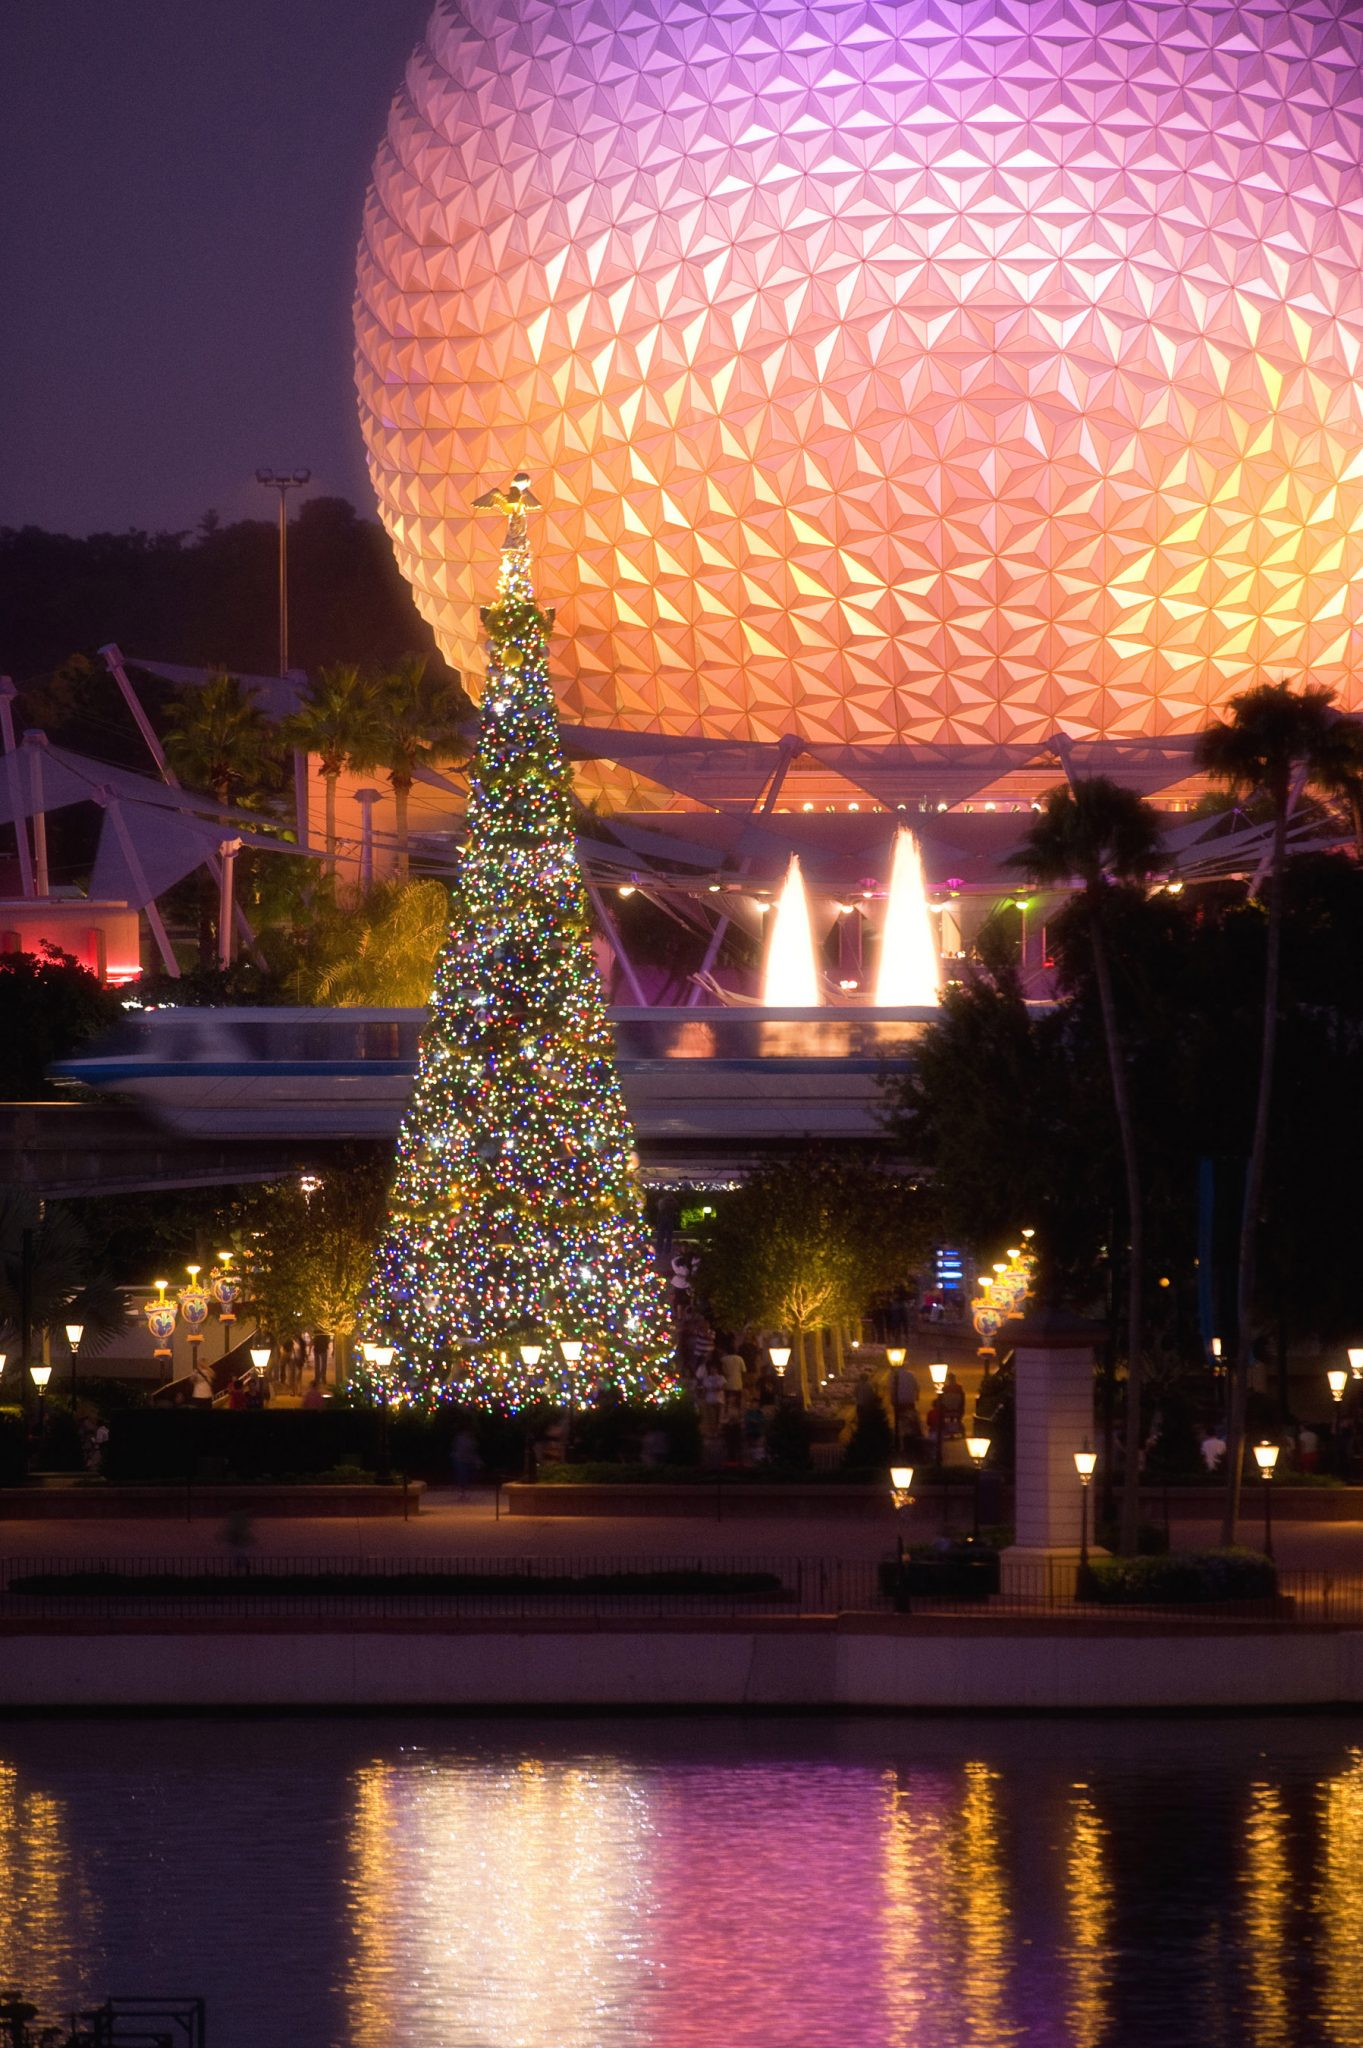 ResortLoop.com Episode 493 – Christmas At EPCOT